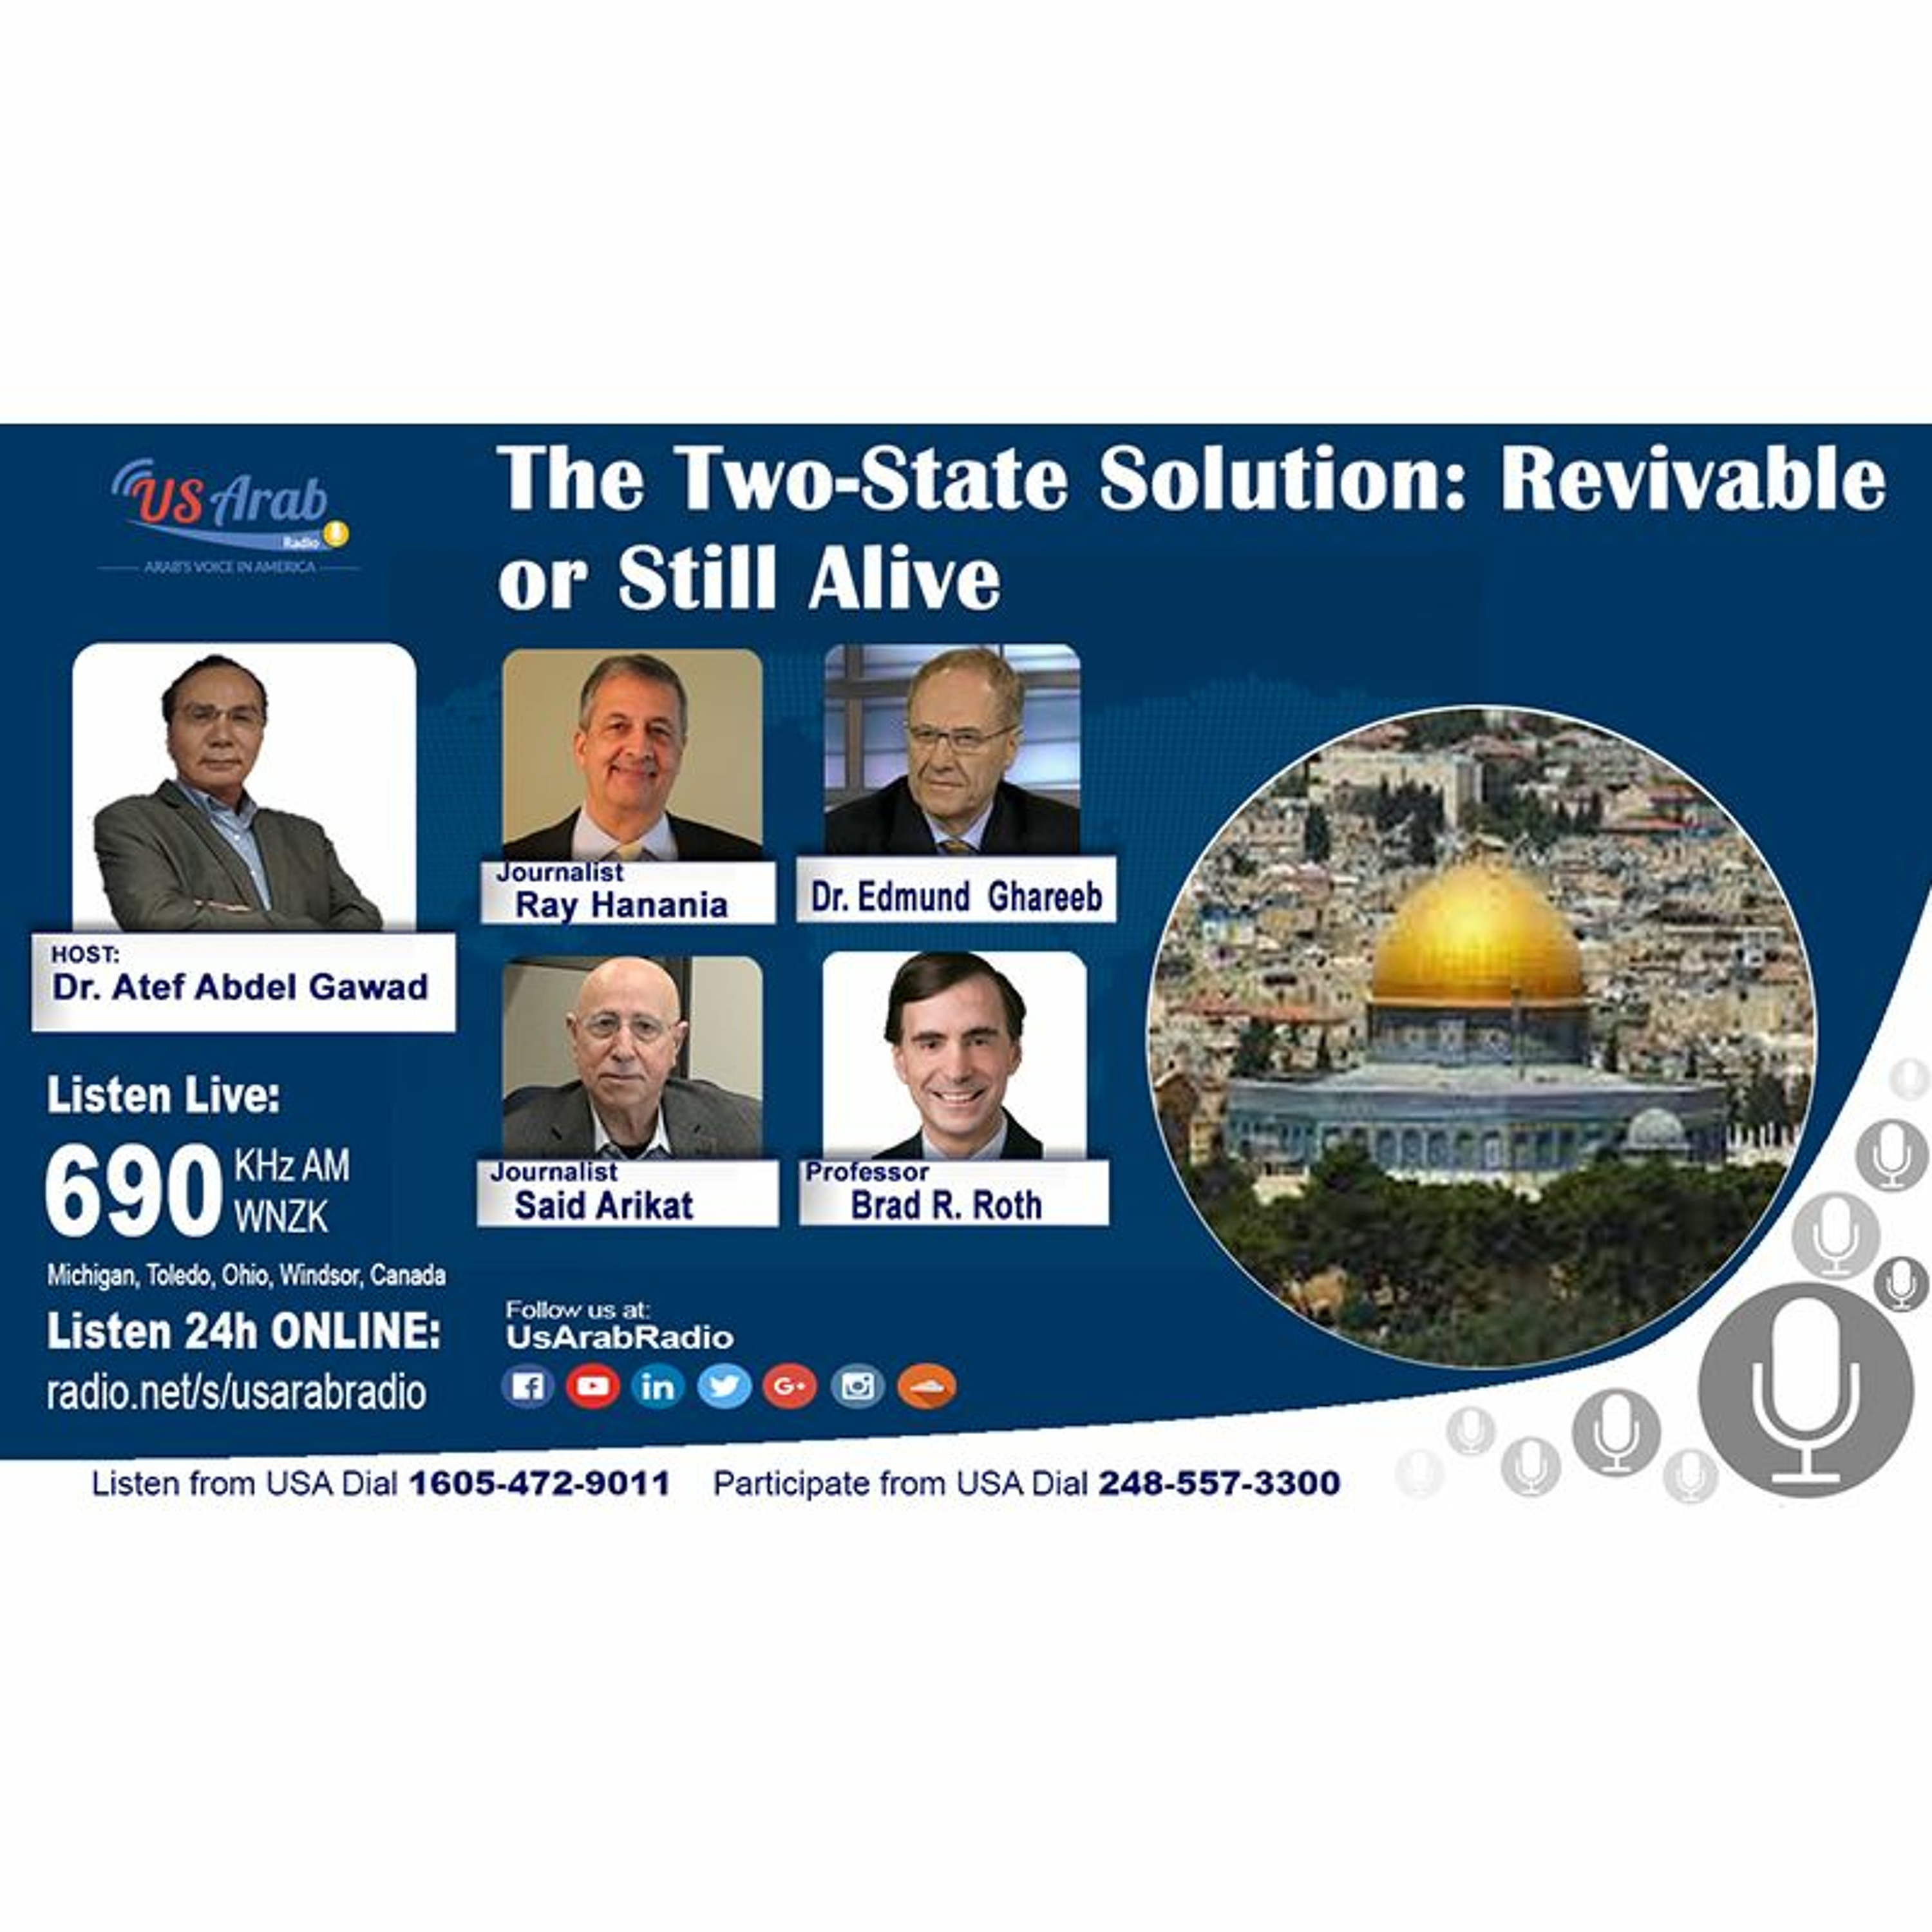 The Two-State Solution: Revivable or Still Alive